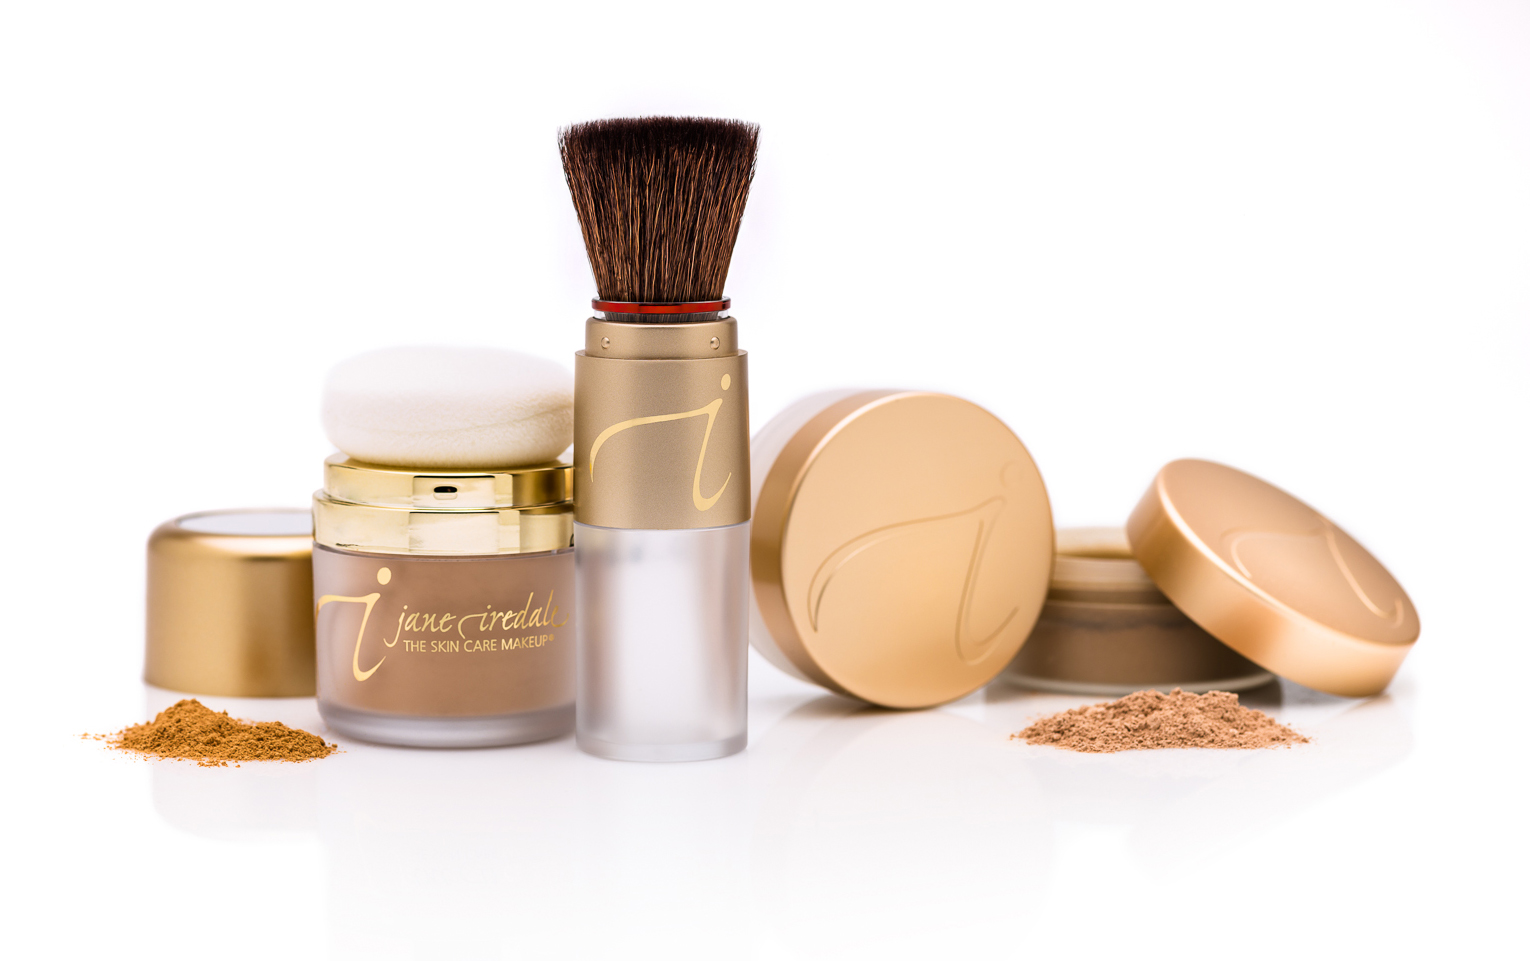 Jane Iredale products available to buy in Halifax Nova Scotia